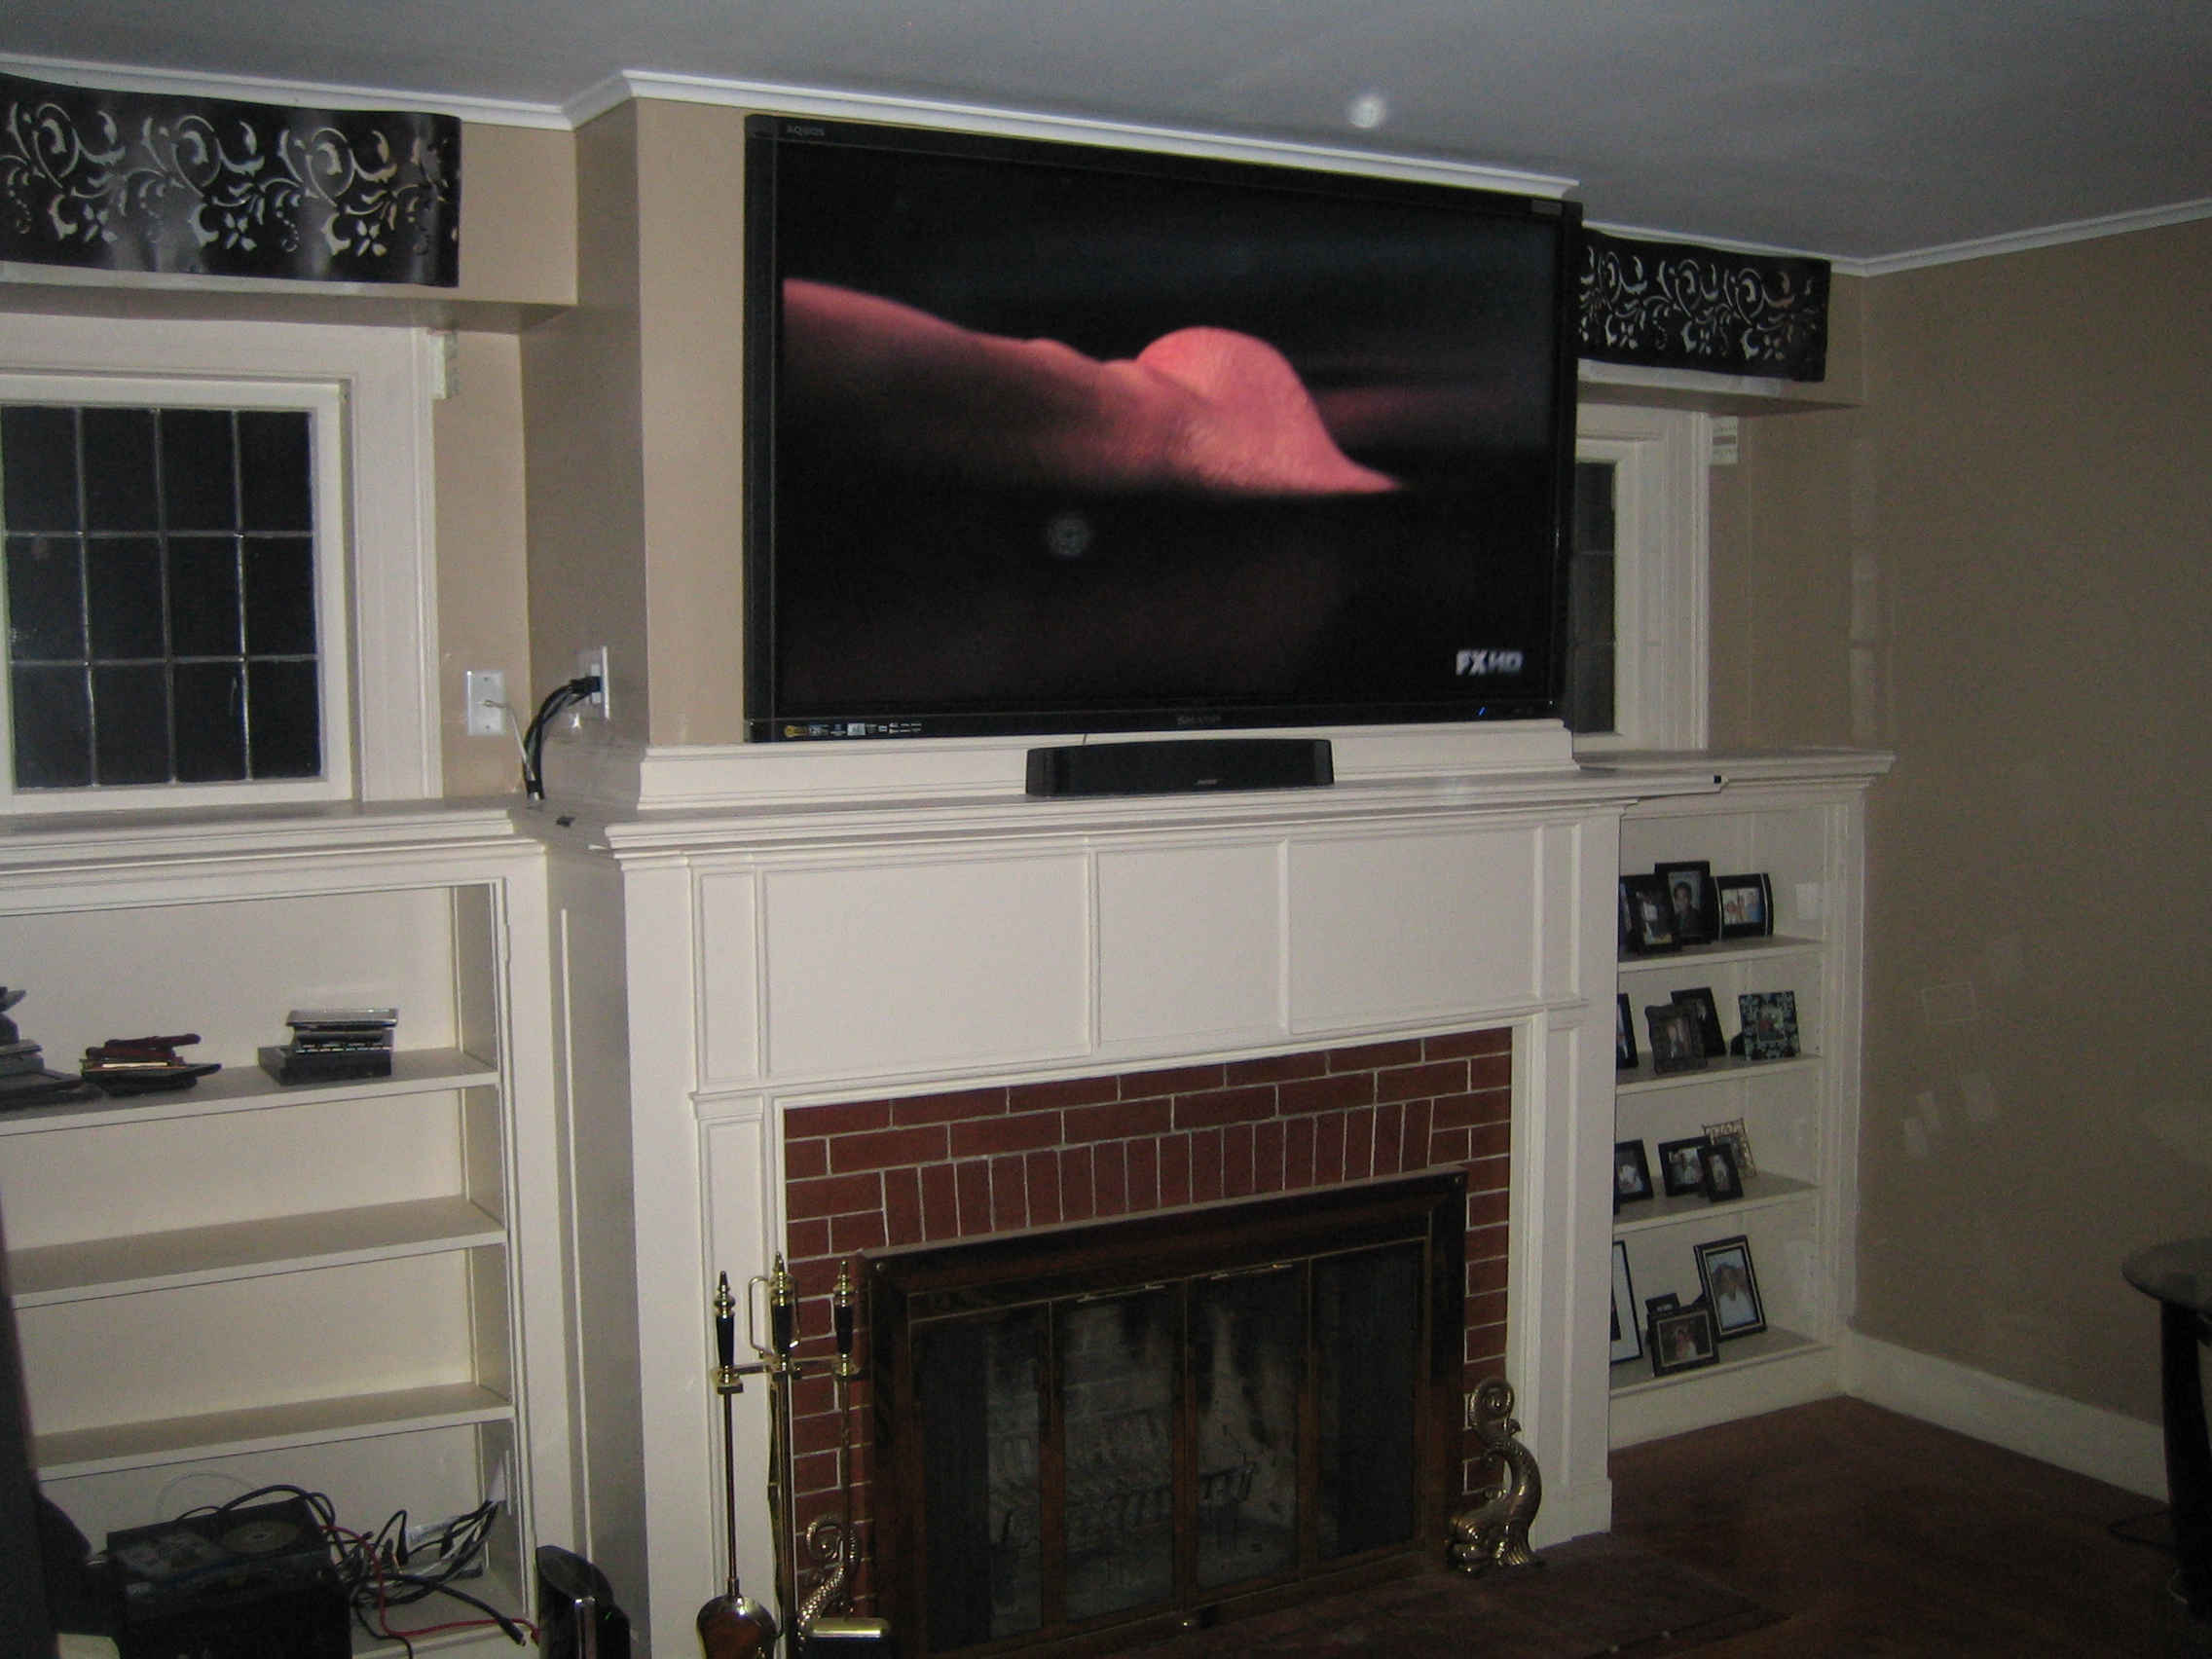 Tv over fireplace ideas where is cable box ask home design for Tv over fireplace